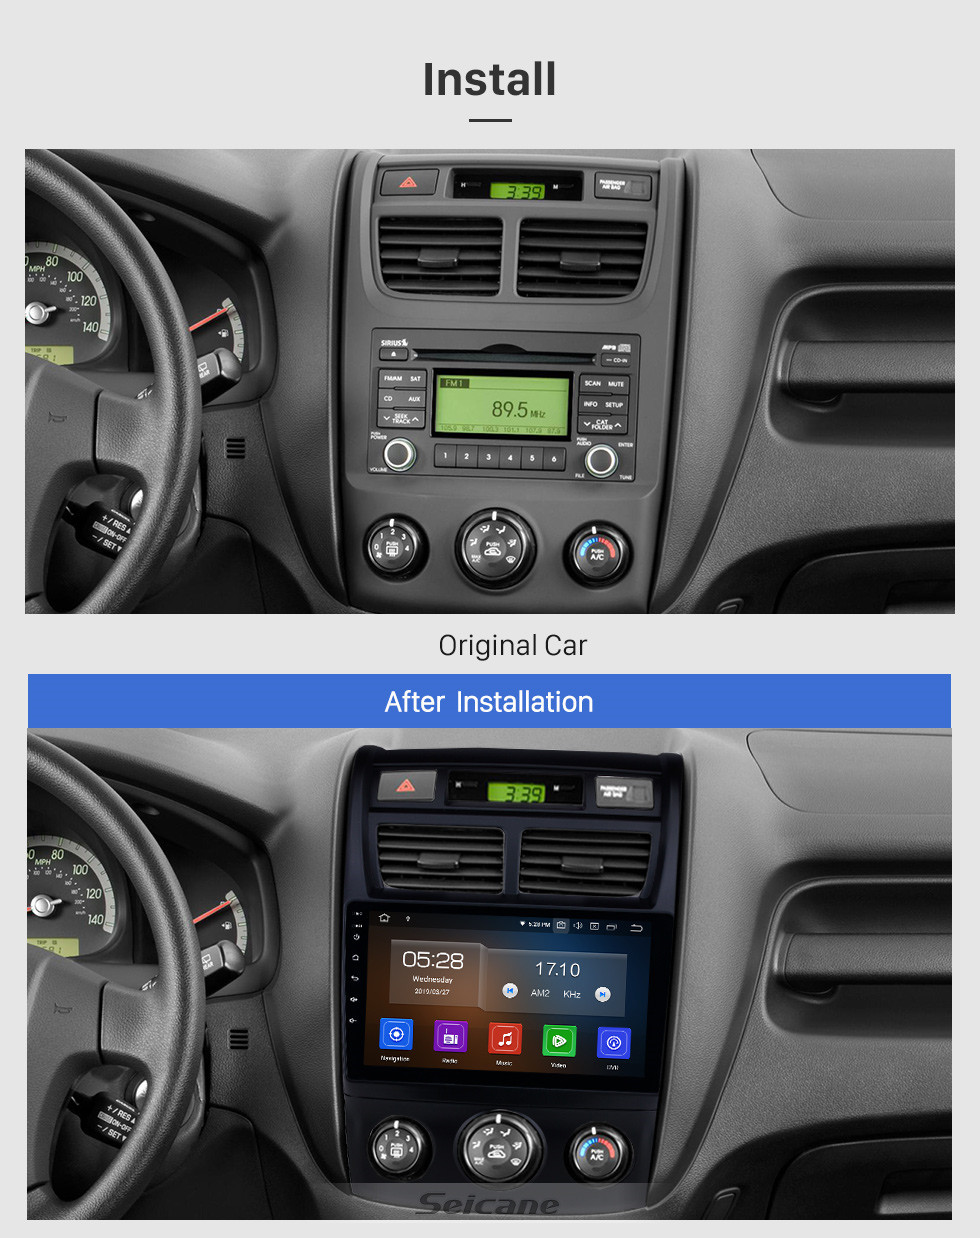 Seicane Android 10.0 9 inch 2007-2017 Kia Sportage Auto A/C HD Touchscreen GPS Navigation Radio with Bluetooth USB Carplay WIFI support OBD2 DVR DAB+